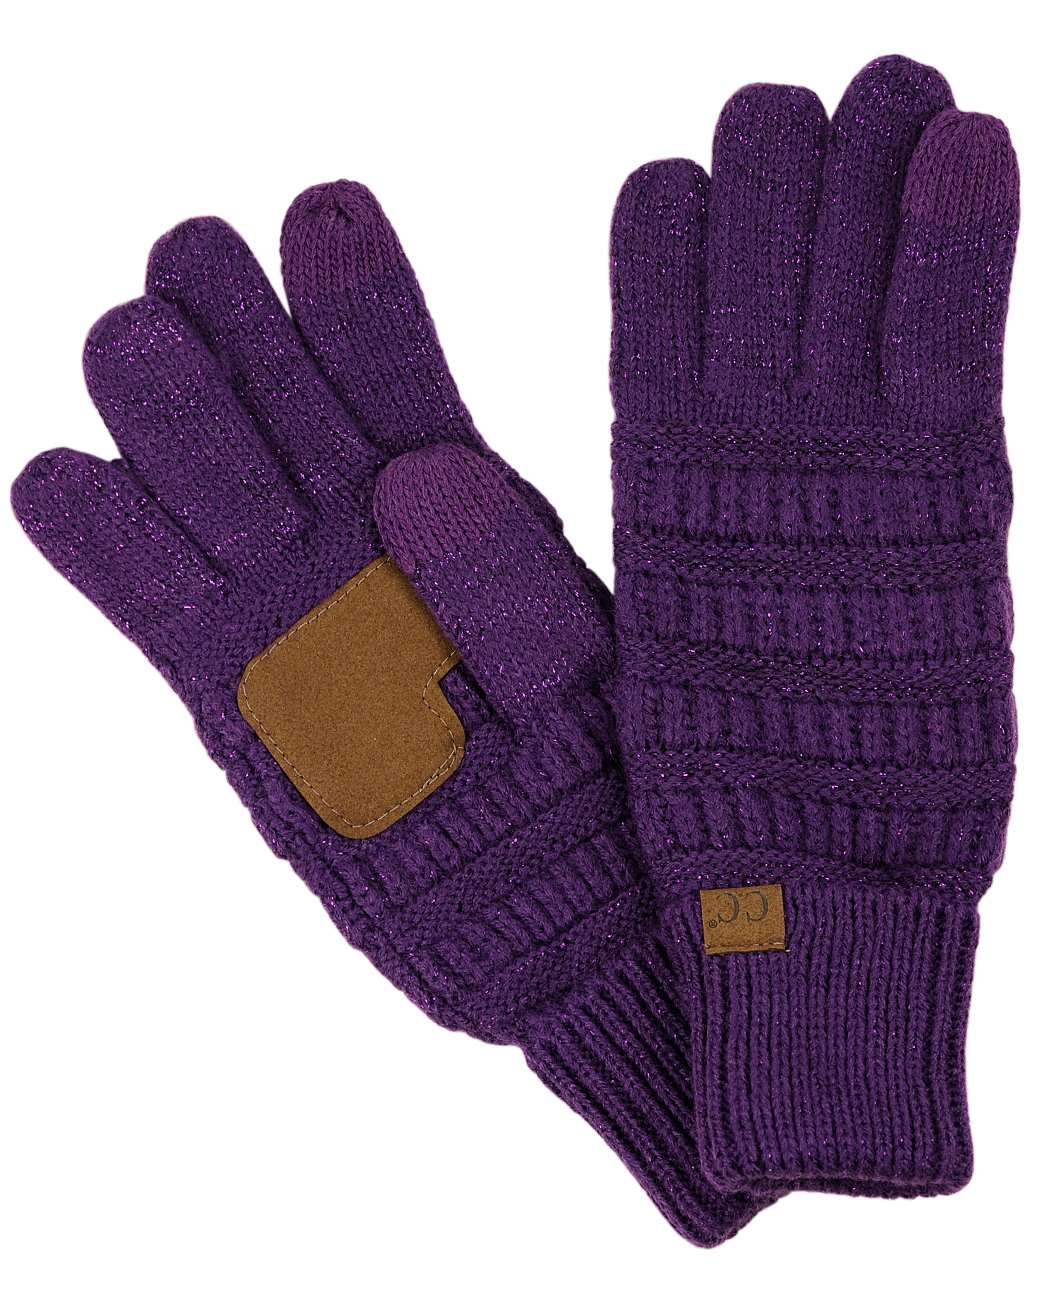 C.C Unisex Cable Knit Winter Warm Anti-Slip Touchscreen Texting Gloves, Purple Metallic